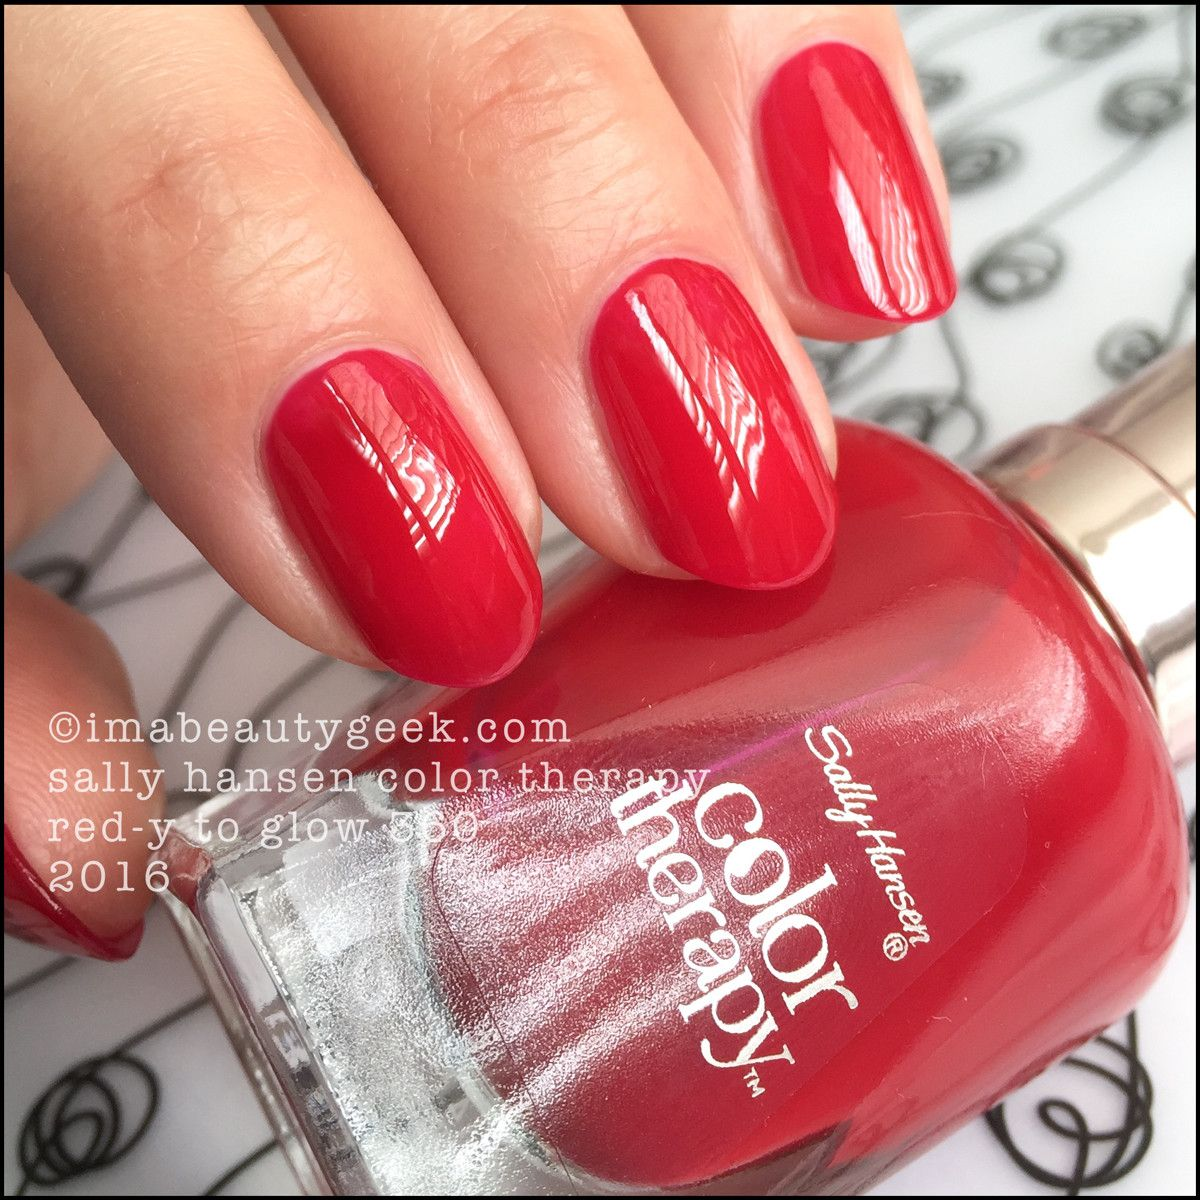 SALLY HANSEN COLOR THERAPY SWATCHES & REVIEW Sally